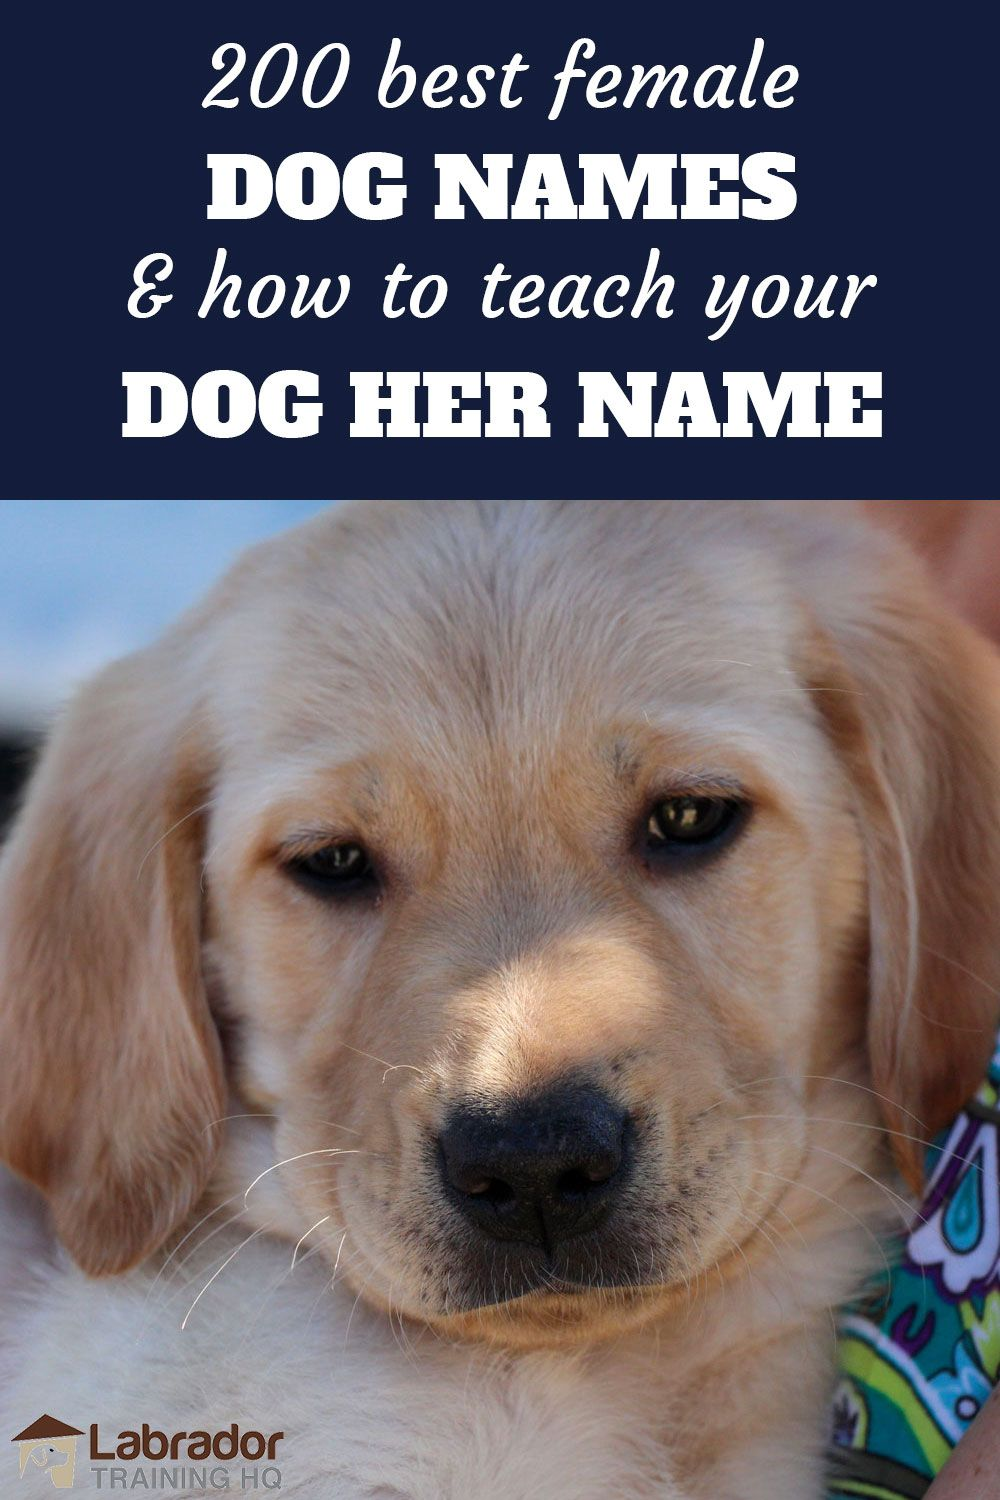 200 Best Female Dog Names And How To Teach Your Dog Their Name In 2020 Dog Names Female Dog Names Puppies Names Female